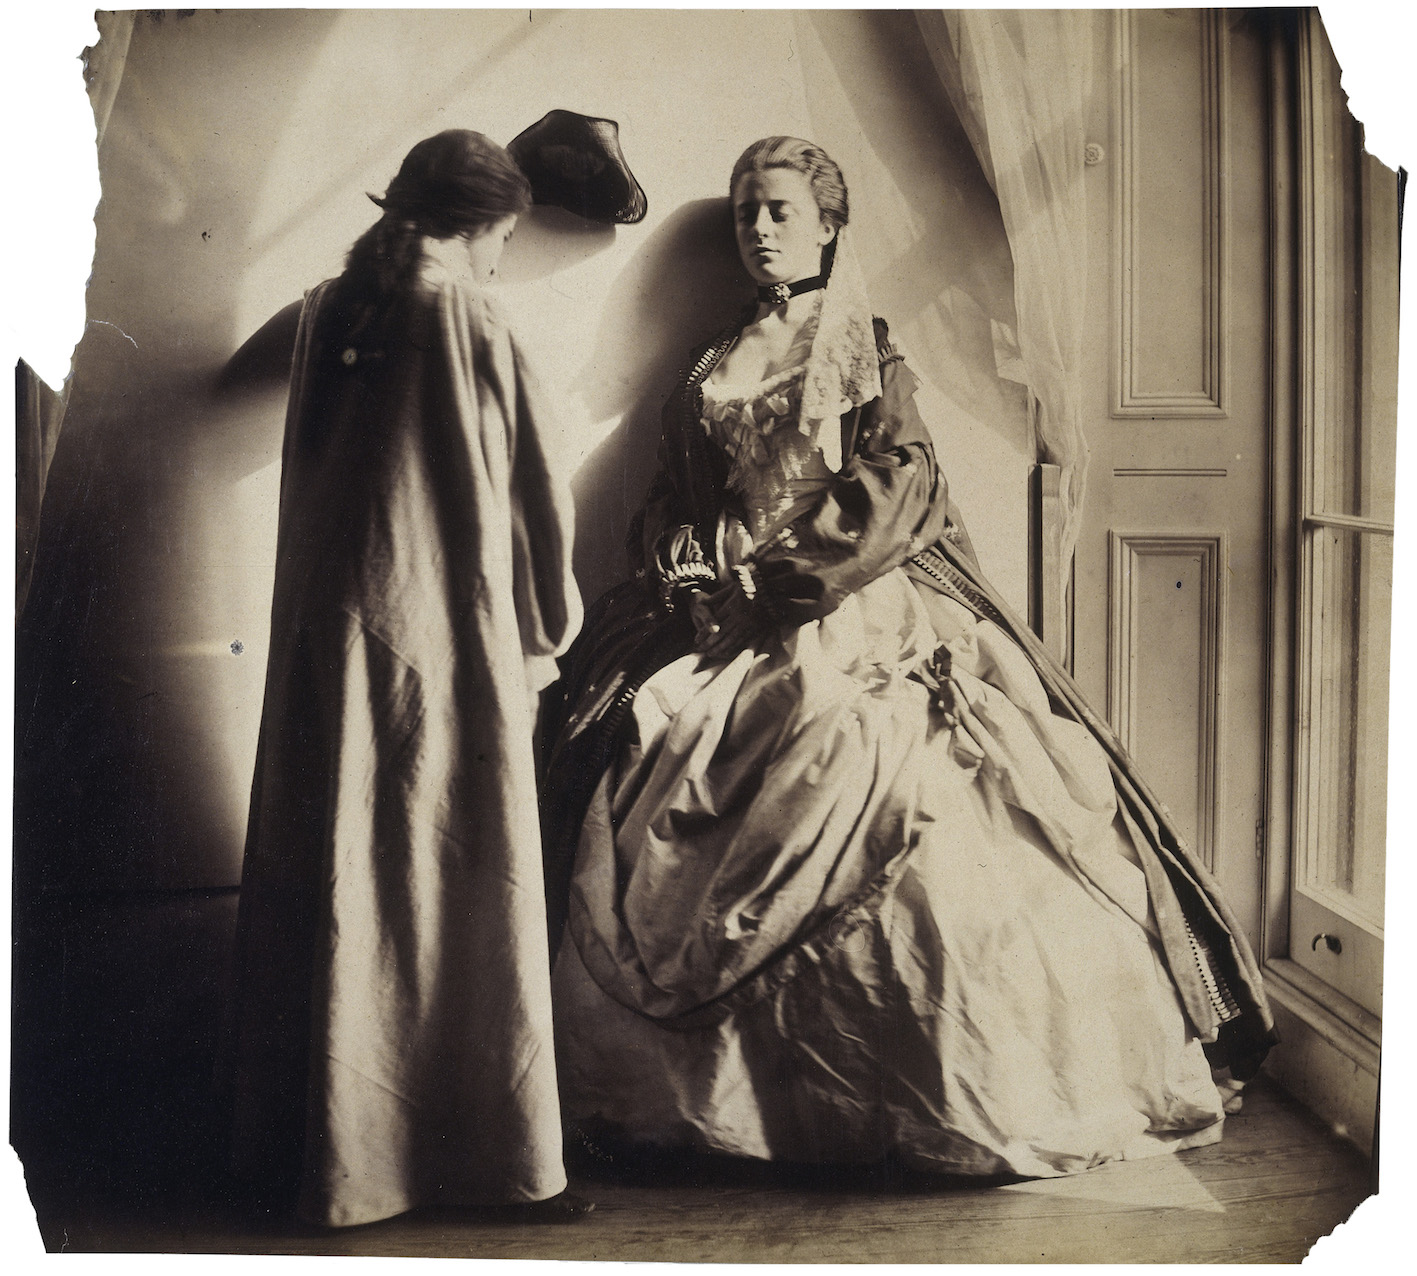 Photographic Study (Clementina and Isabella Grace Maude) by Clementina Hawarden, 1863-4. Copyright National Portrait Gallery